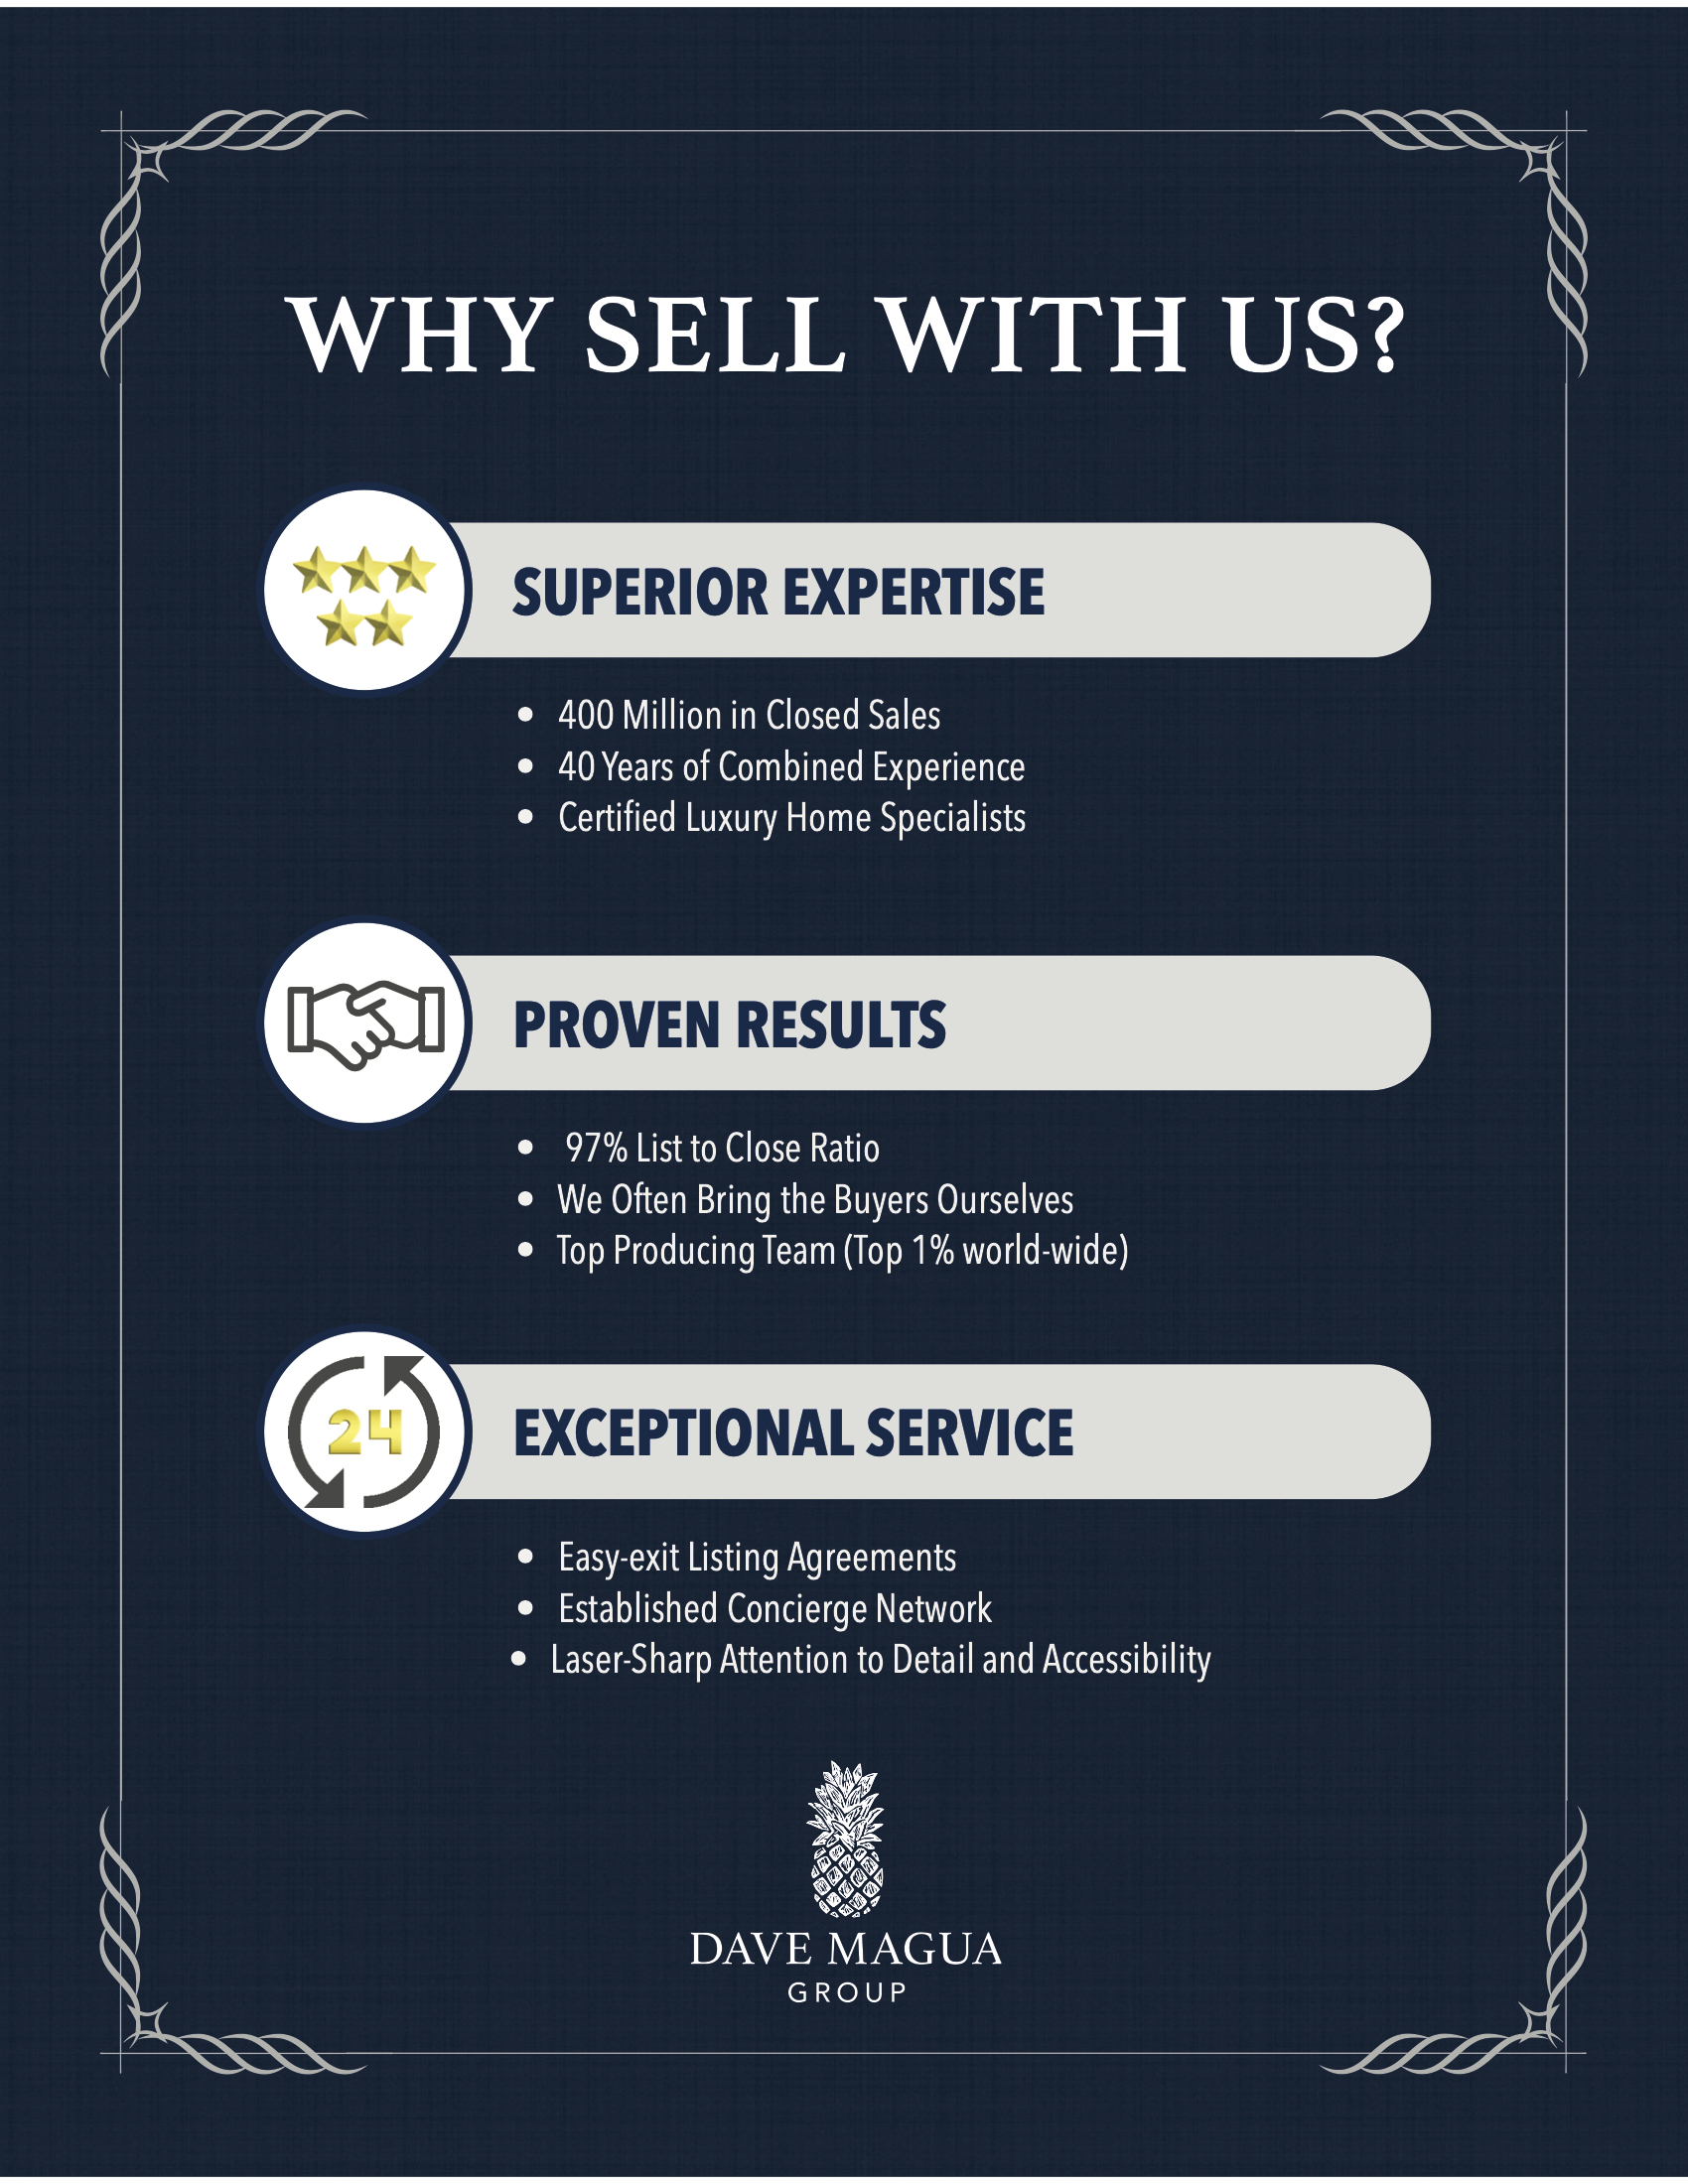 Bohn - Why Sell With Us v4 PRINT.jpg